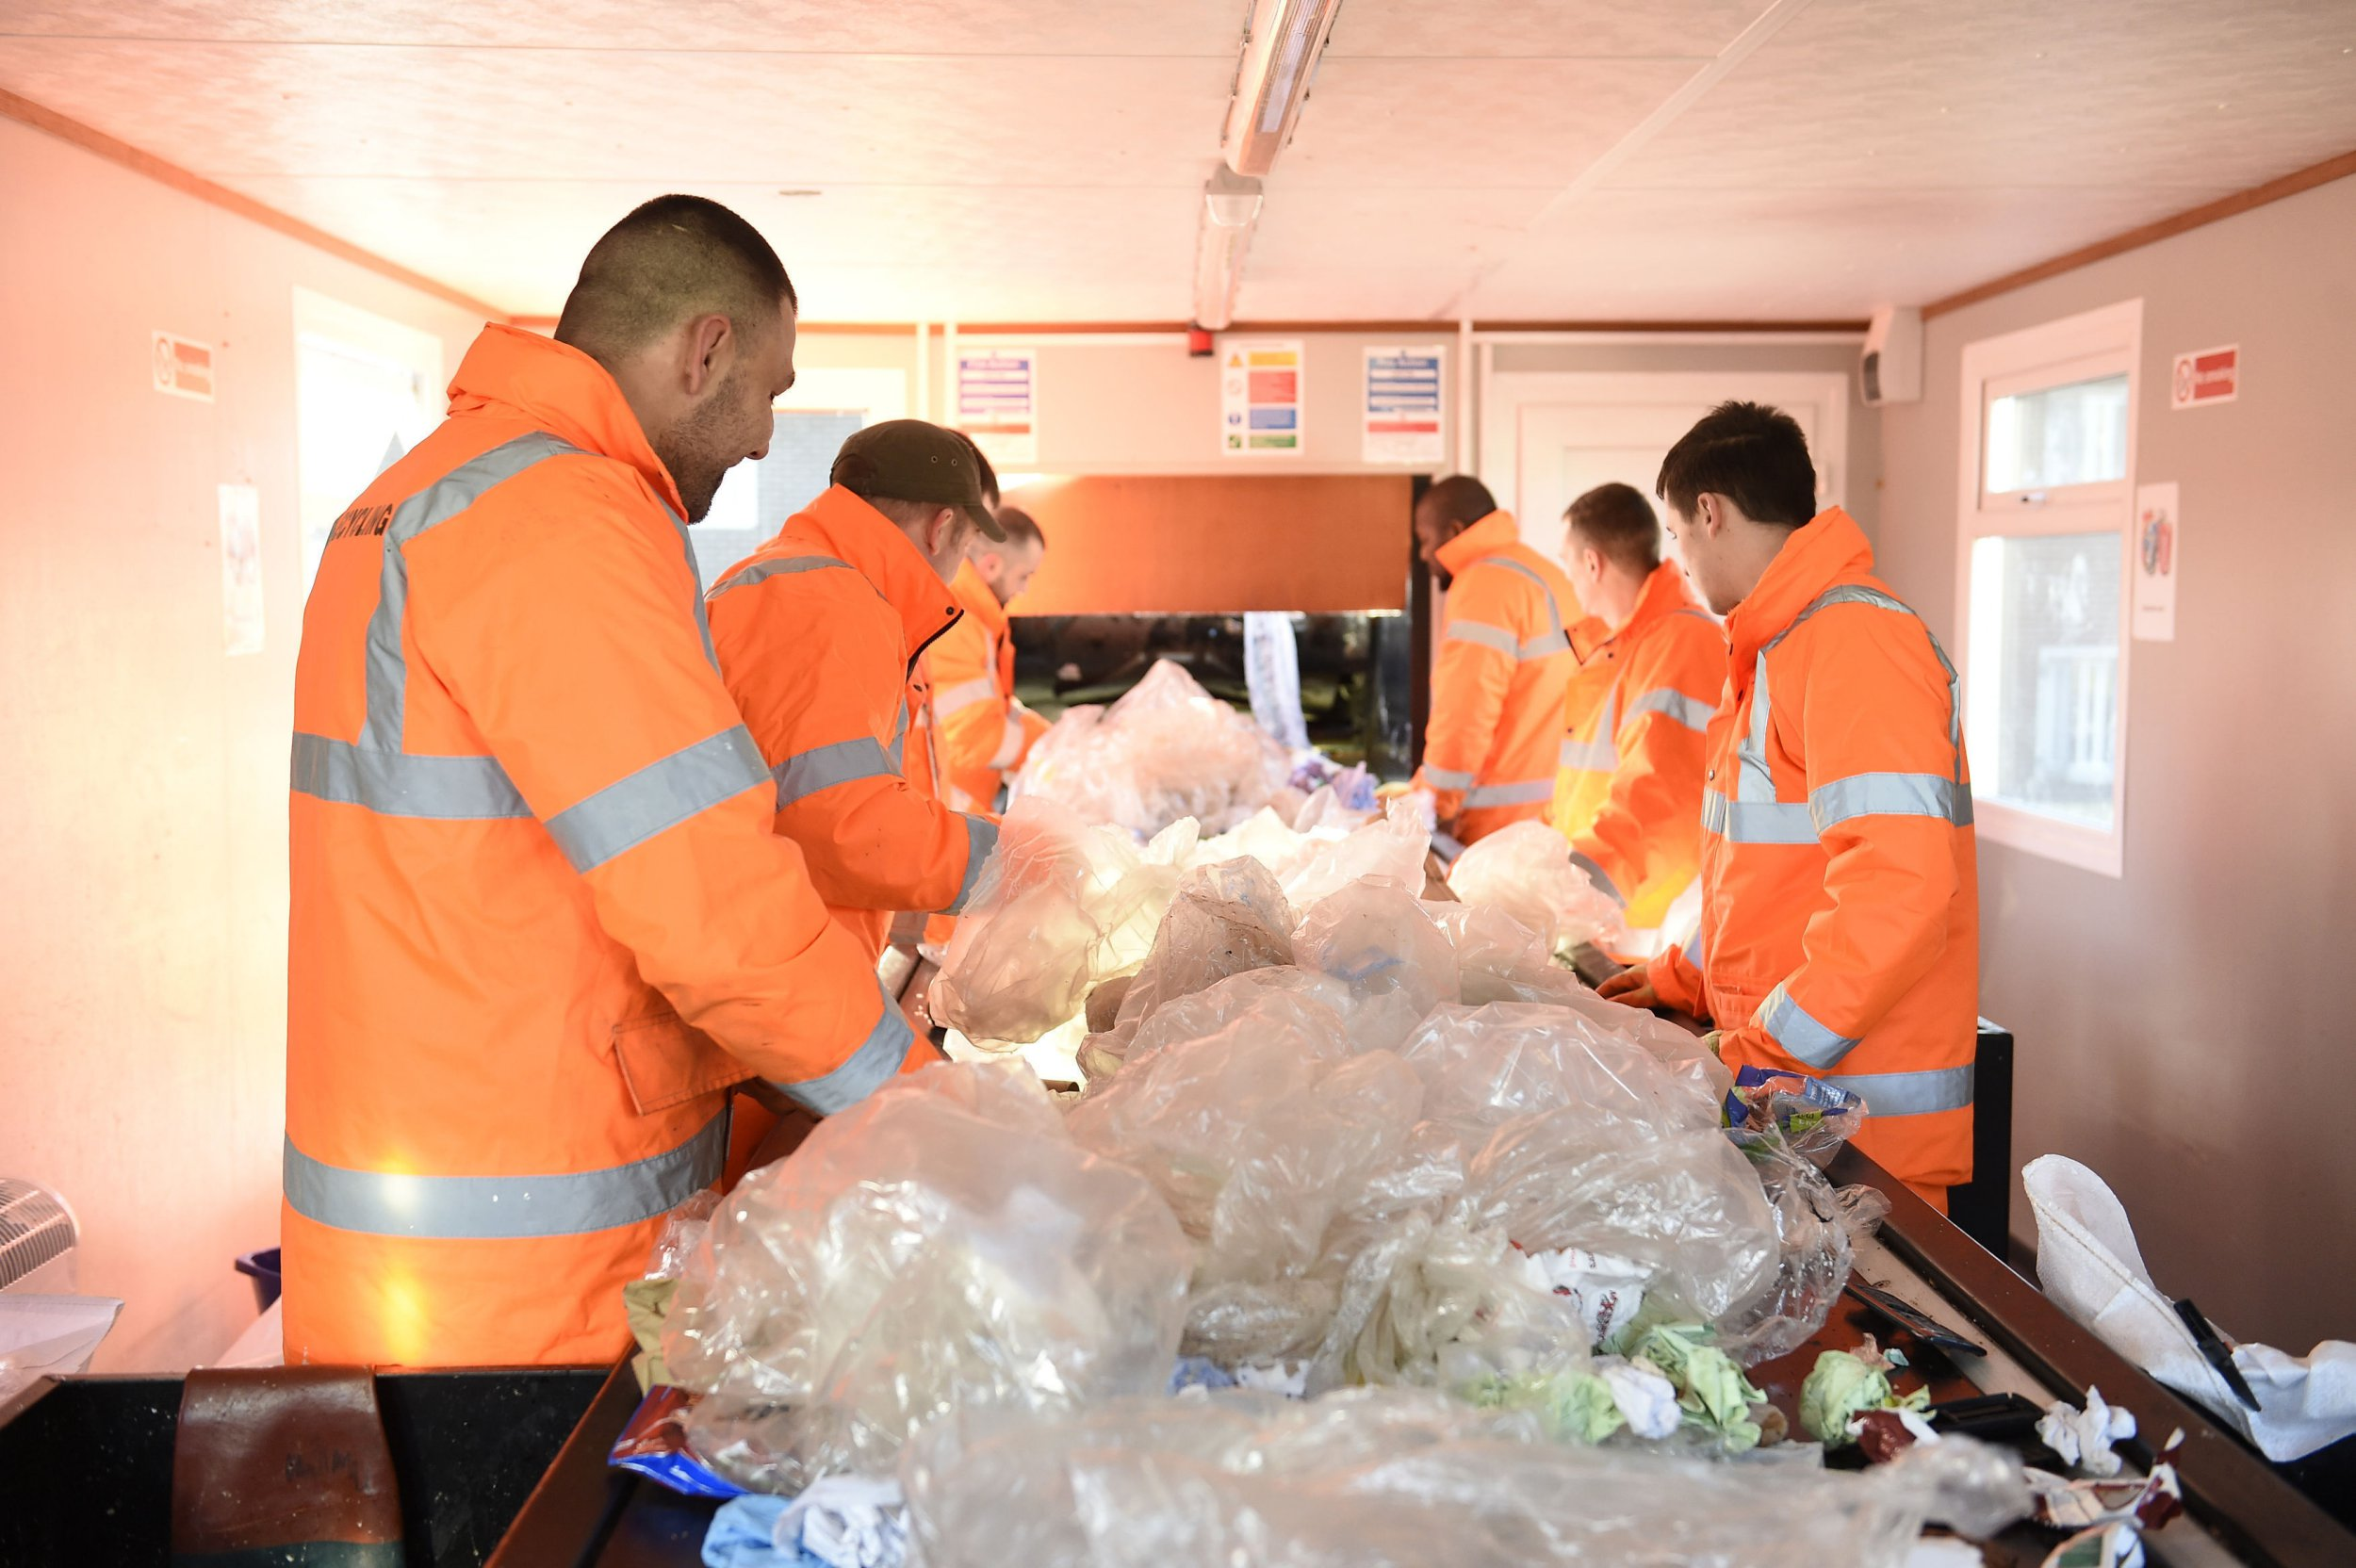 MANDATORY CREDIT: Michael Cooper Undated Michael Cooper handout photo of prisoners taking part in a new recycling project at Maghaberry Prison which is set to halve its waste costs in coming years. PRESS ASSOCIATION Photo. Issue date: Tuesday March 20, 2018. About 30 prisoners sort plastic, tin cans, cardboard, newspaper, broken pallets and waste electric equipment, and the amount going to landfill has been slashed. See PA story ULSTER Recycling. Photo credit should read: Michael Cooper/PA Wire NOTE TO EDITORS: This handout photo may only be used in for editorial reporting purposes for the contemporaneous illustration of events, things or the people in the image or facts mentioned in the caption. Reuse of the picture may require further permission from the copyright holder.